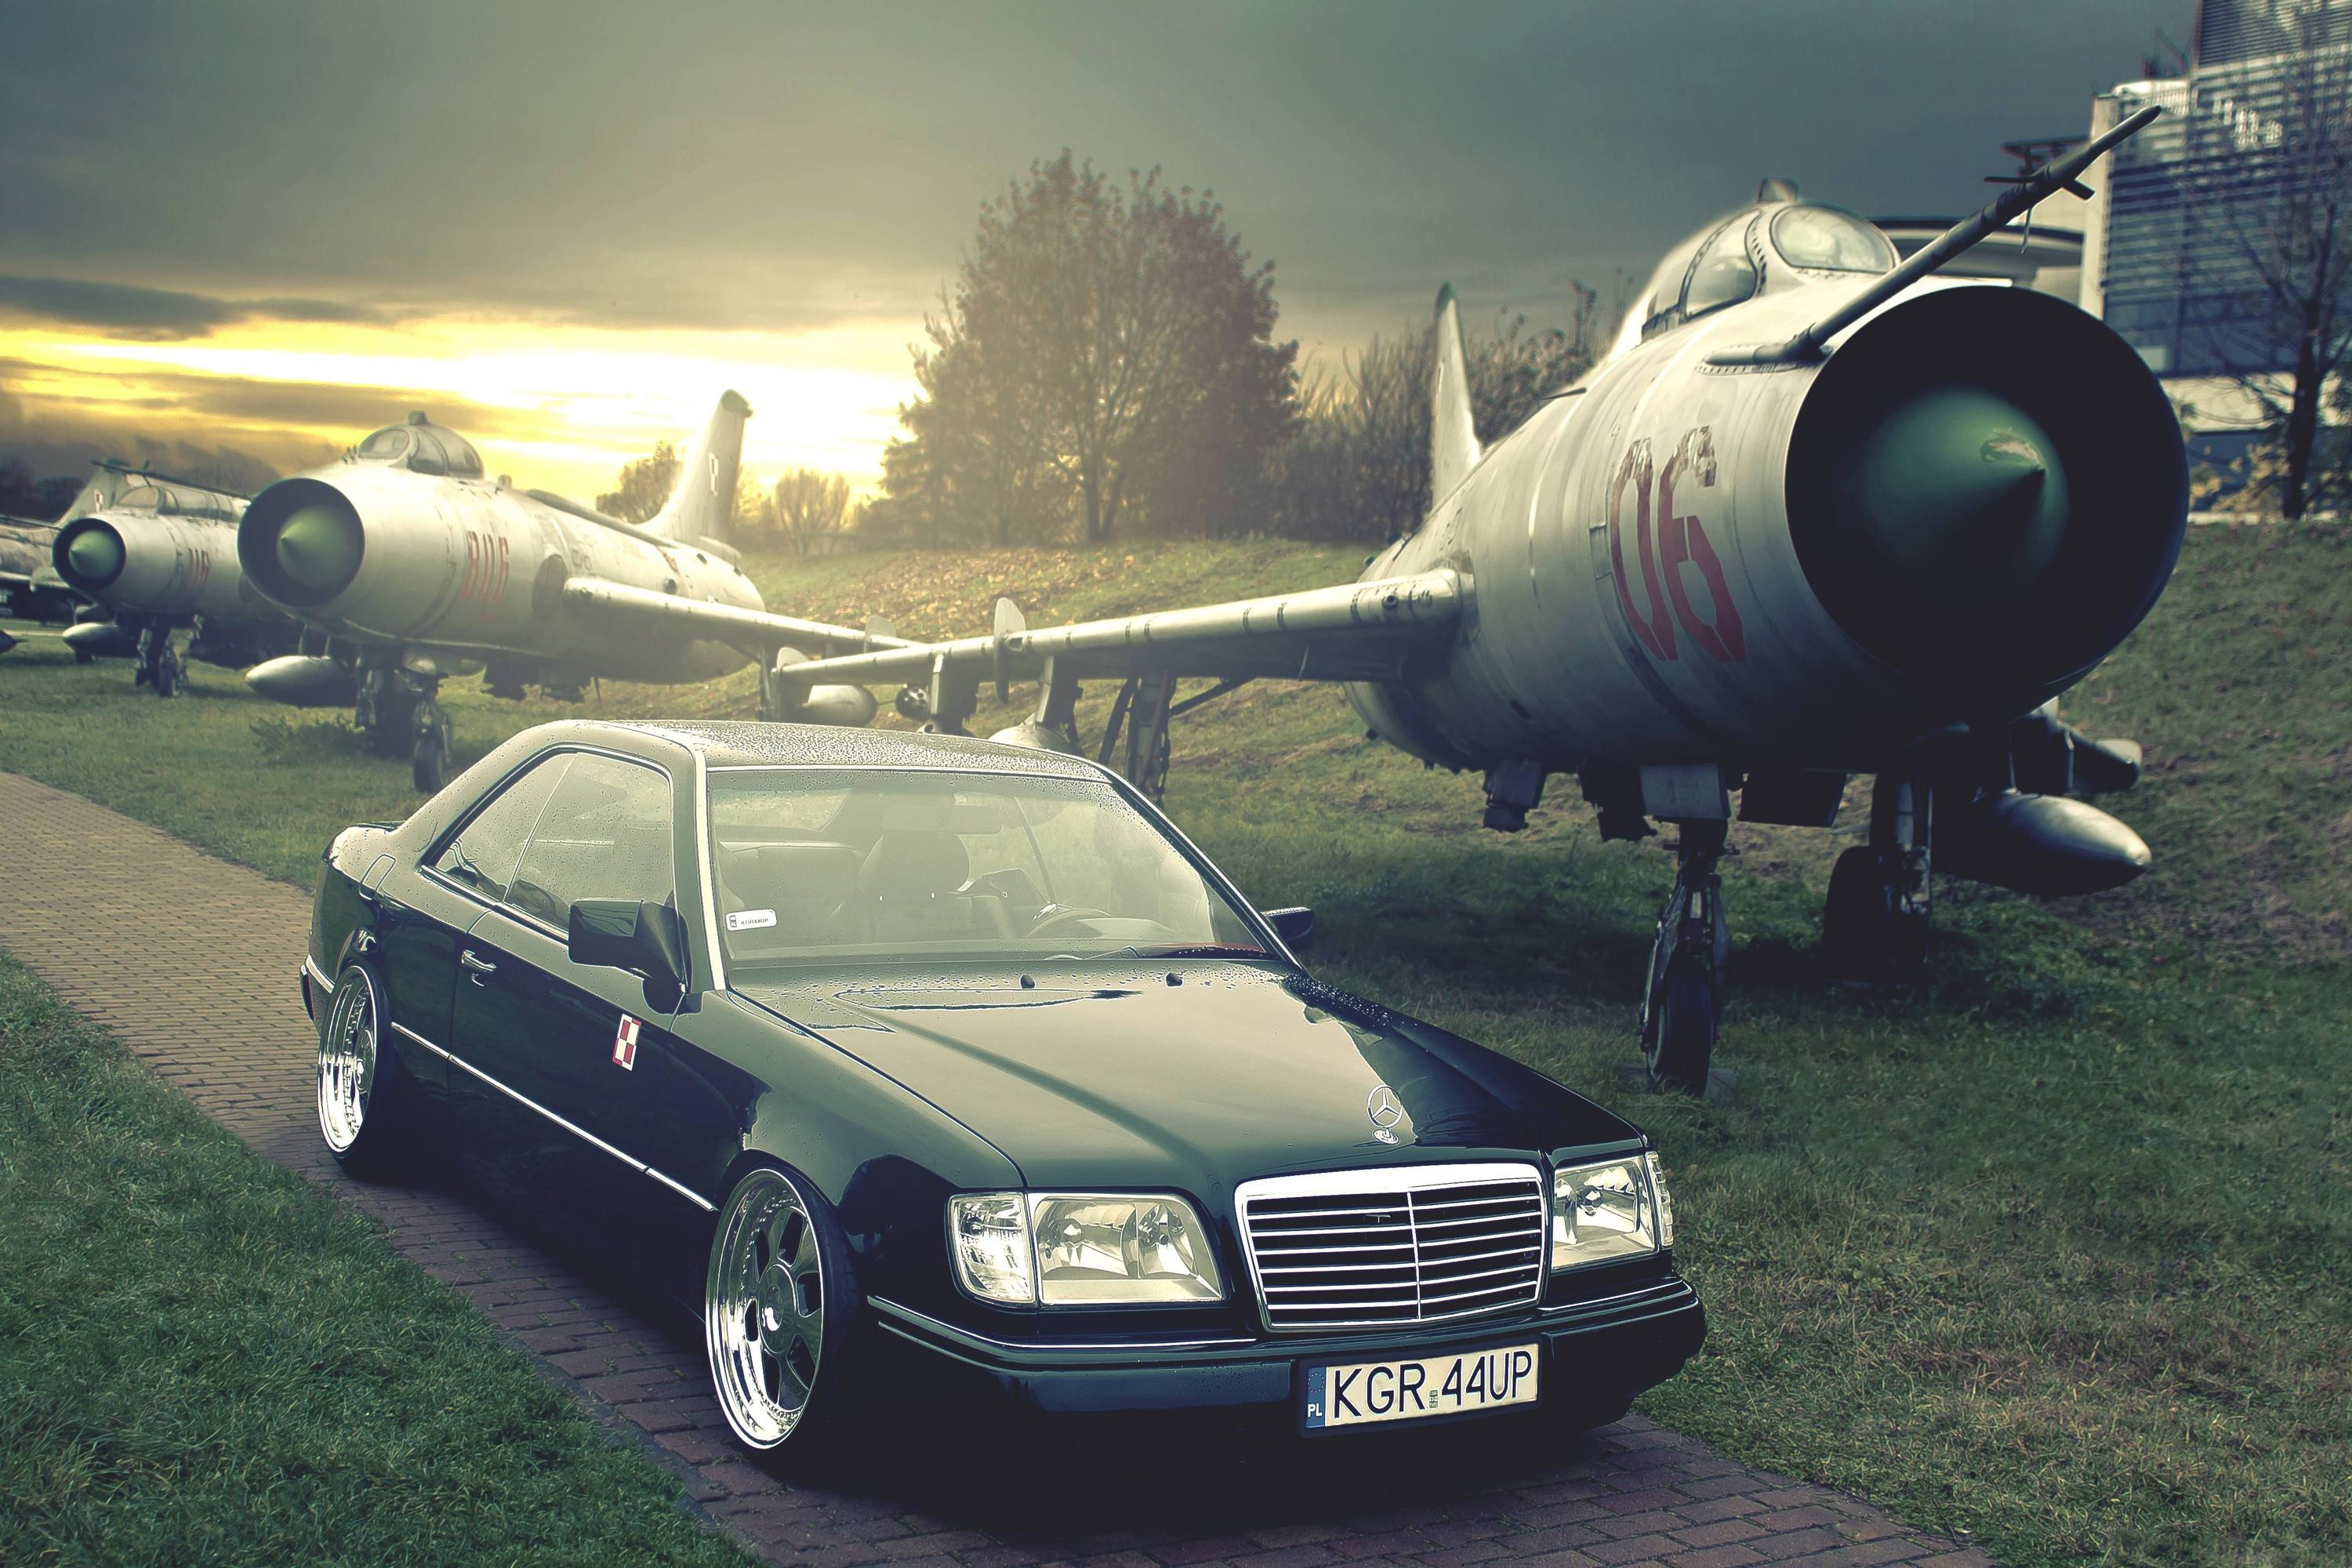 179 Mercedes Benz Hd Wallpapers Background Images Wallpaper Abyss